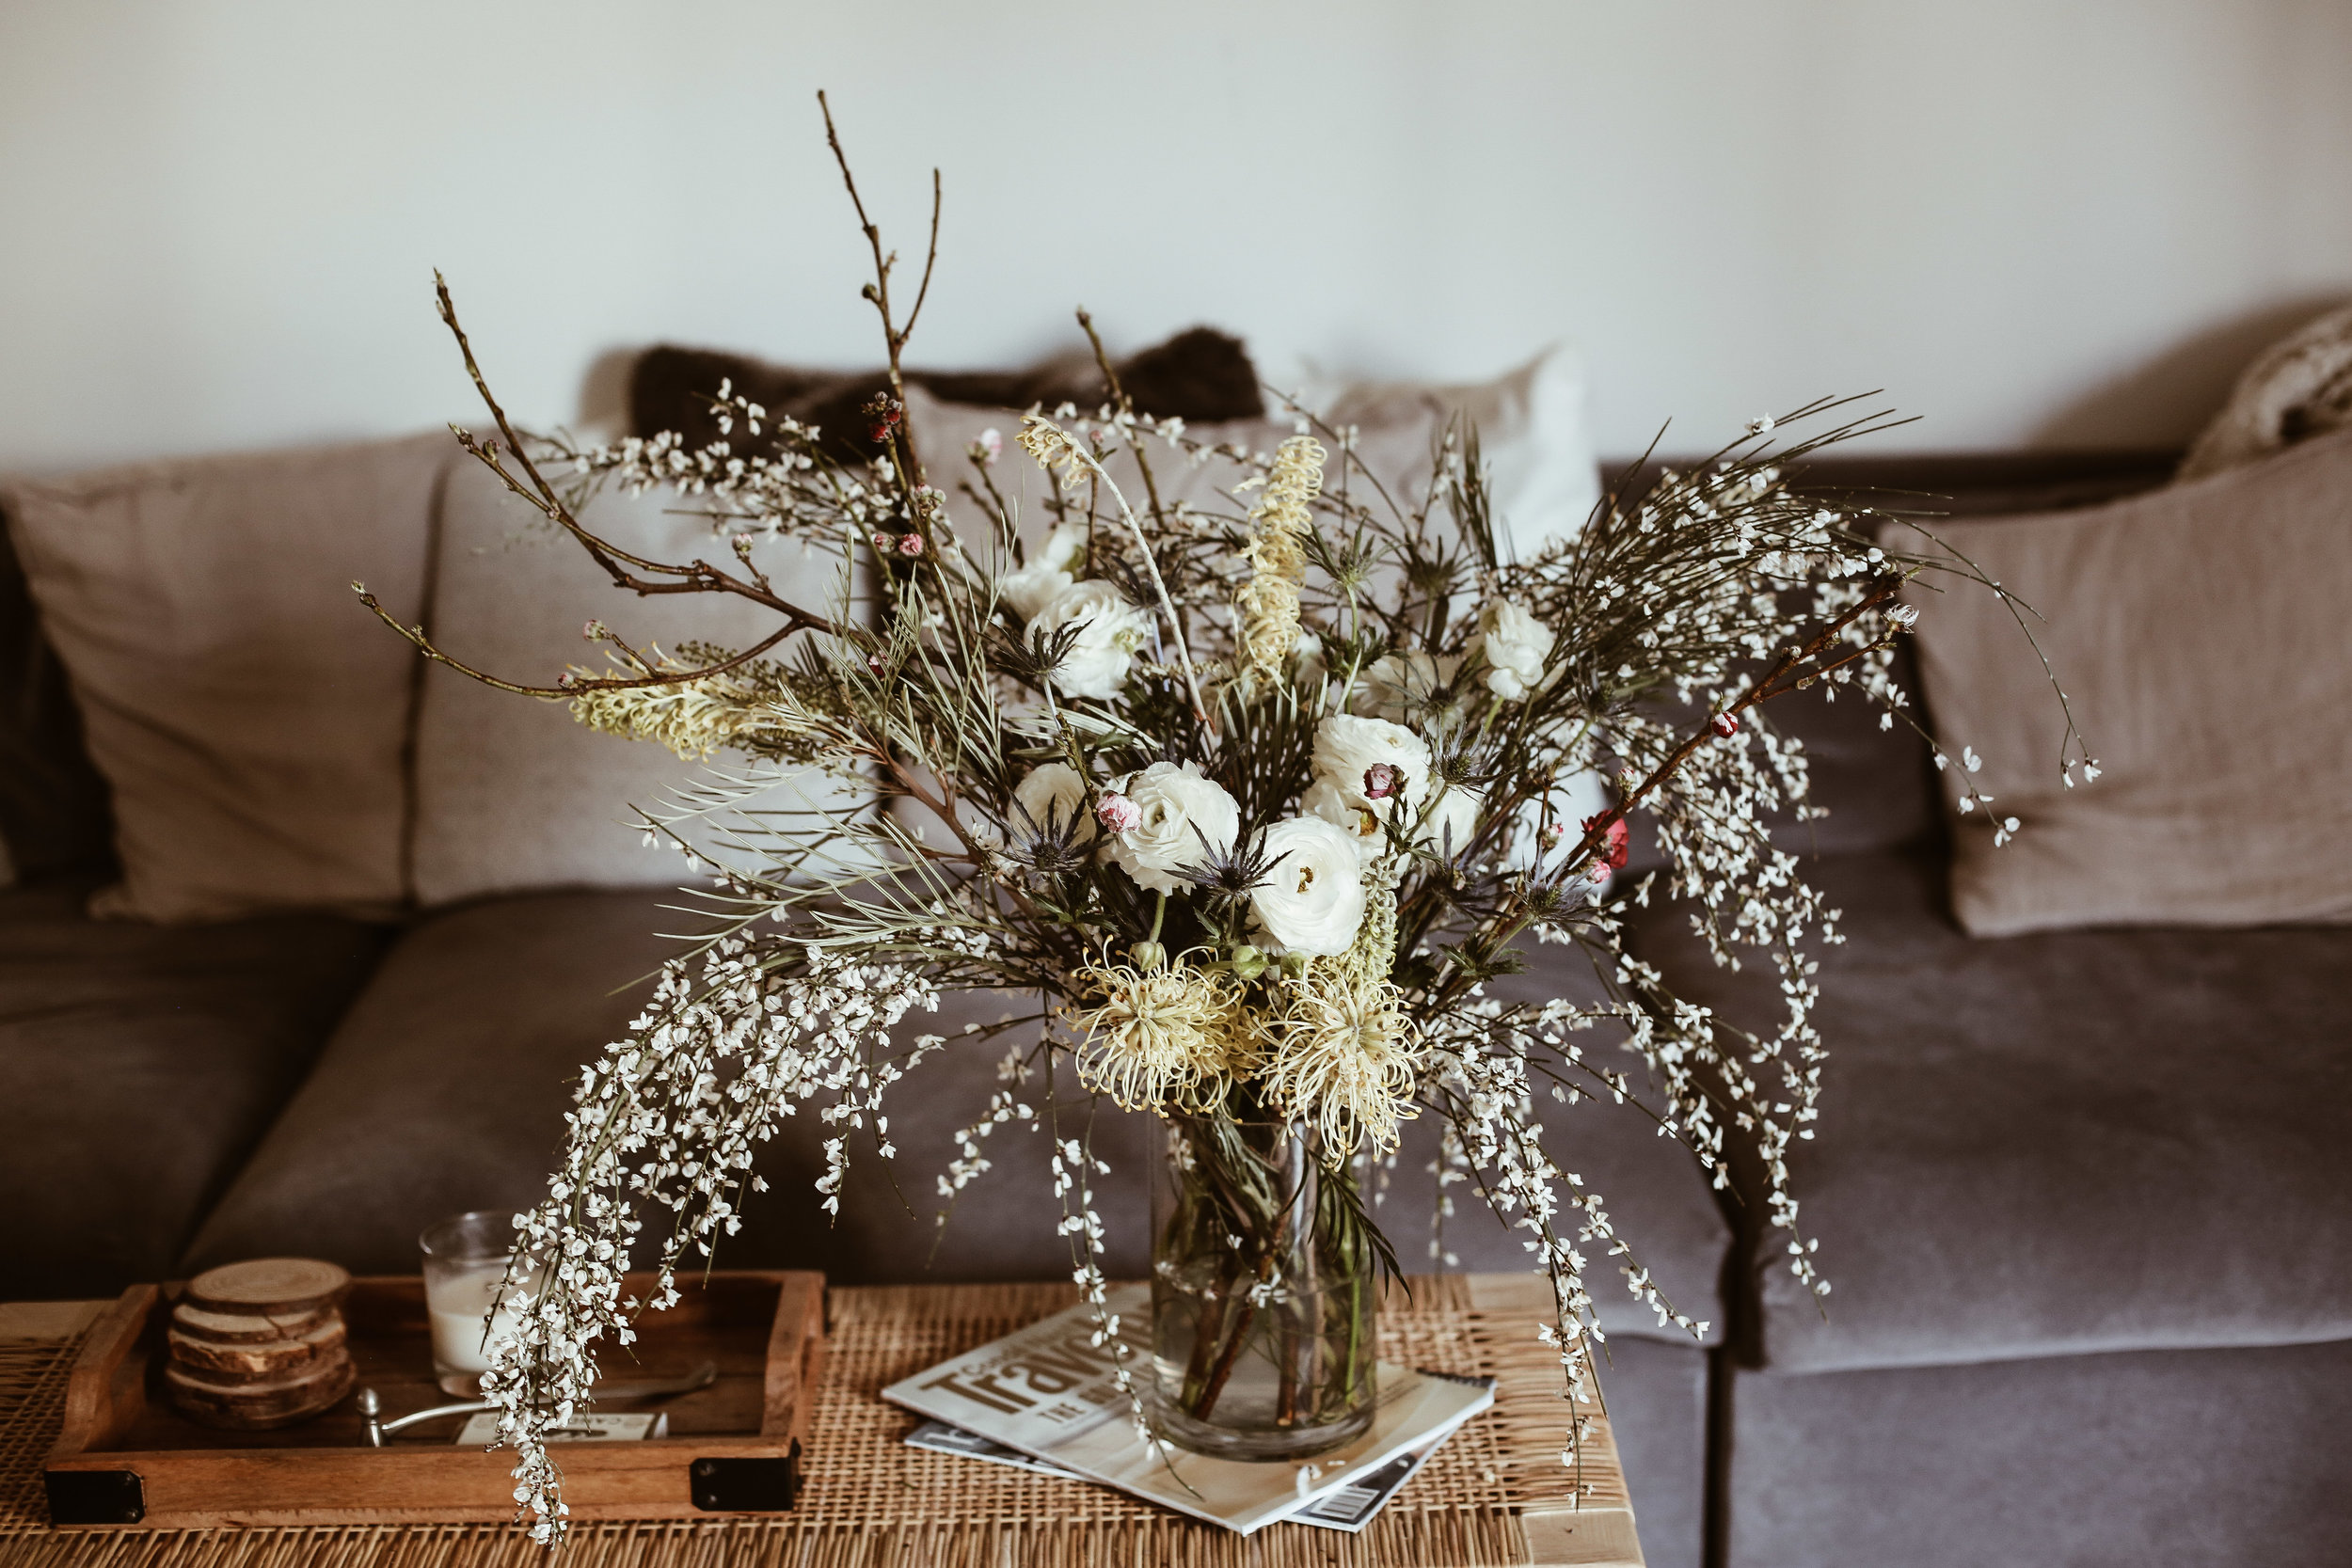 SPRING FLOWER ARRANGEMENT - DWELL // FEATURED STORY